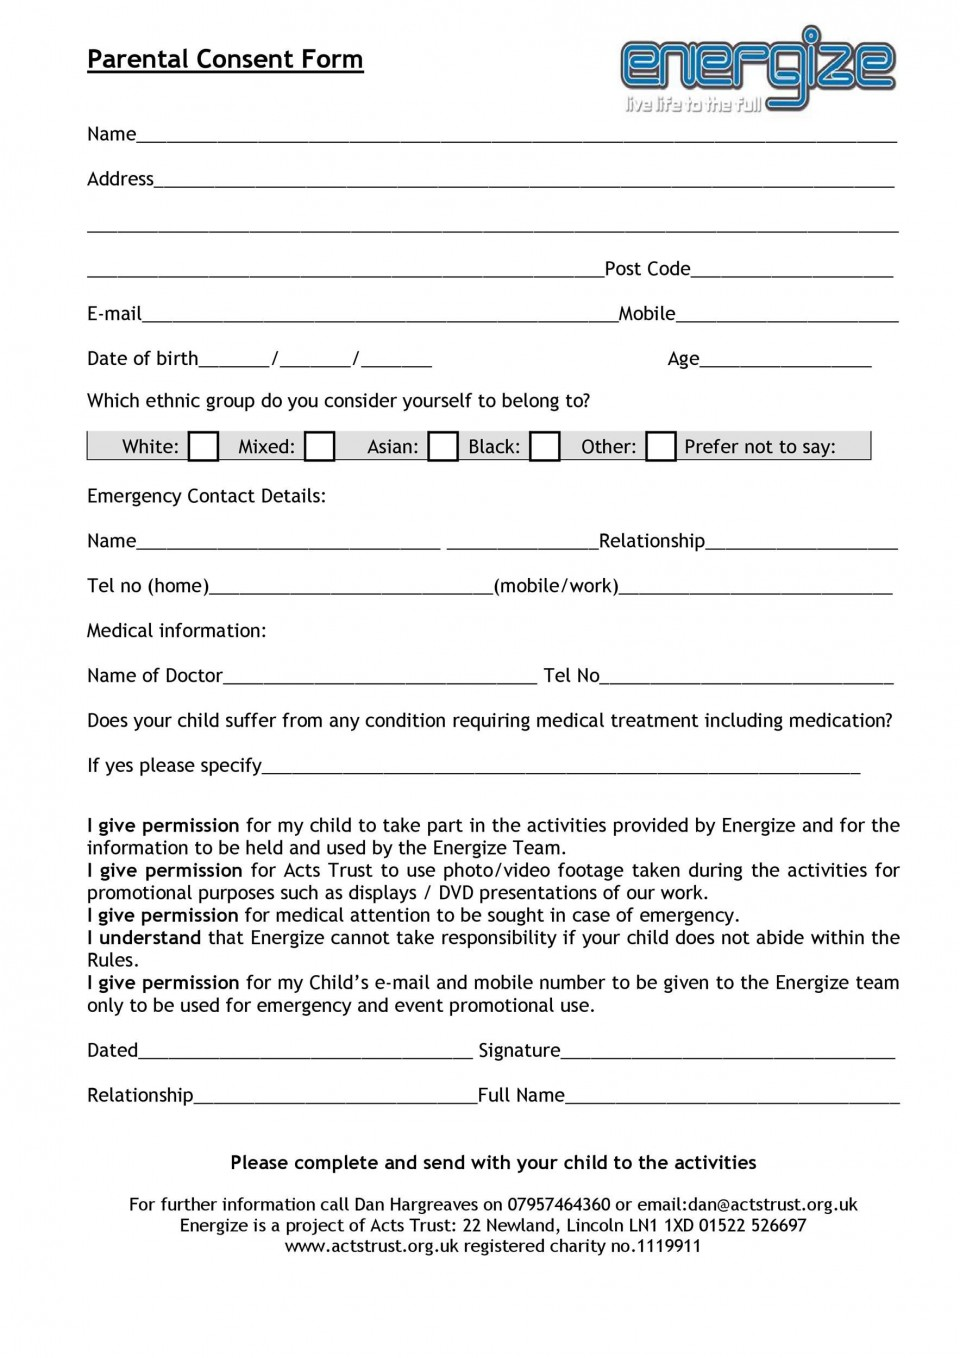 007 Wonderful Free Parental Medical Consent Form Template Design 960